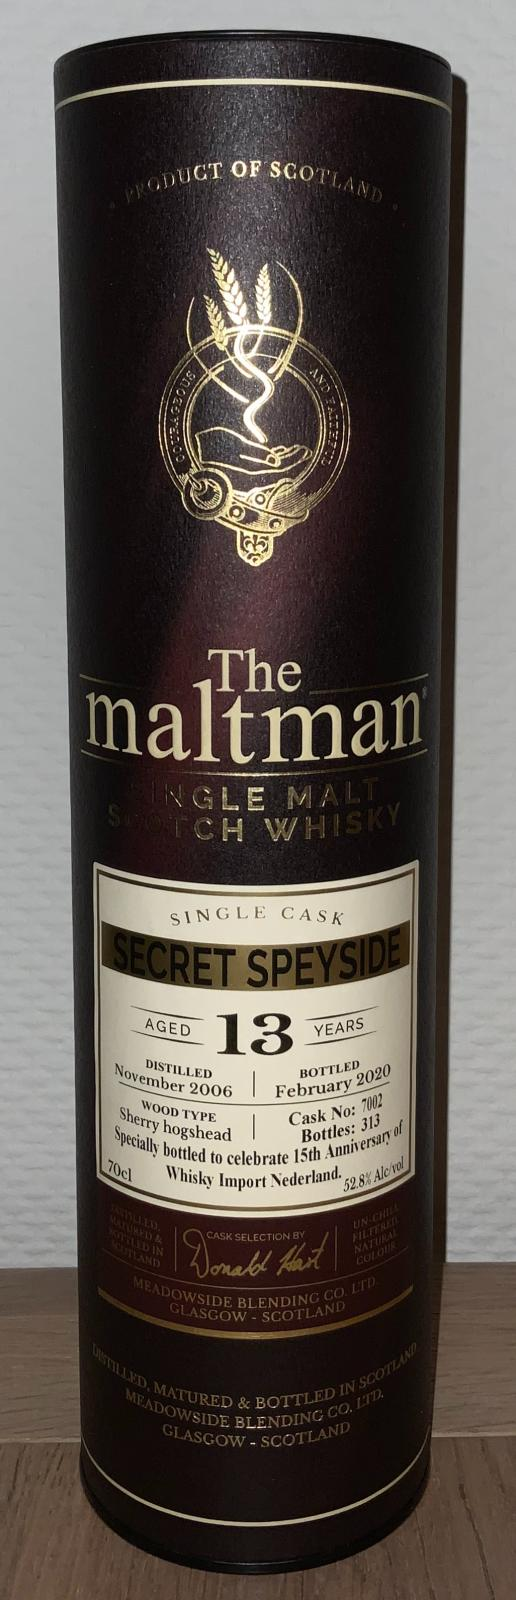 Secret Speyside Distillery 2006 MBl